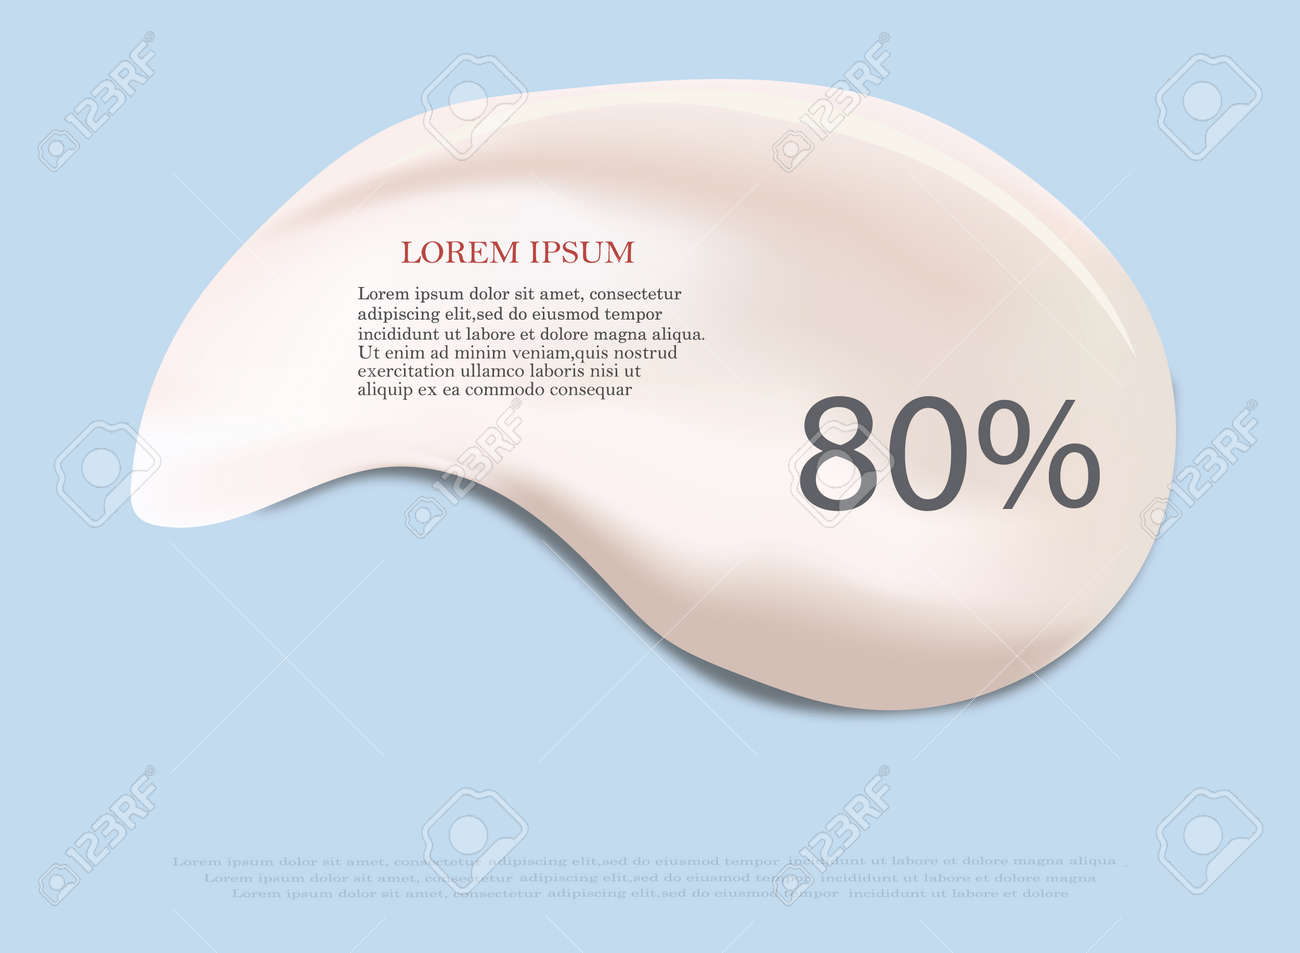 Cream texture stroke isolated on transparent background. Facial creme, foam, gel or body lotion skincare icon. Vector face cream cosmetic product smear swatch. - 169711998